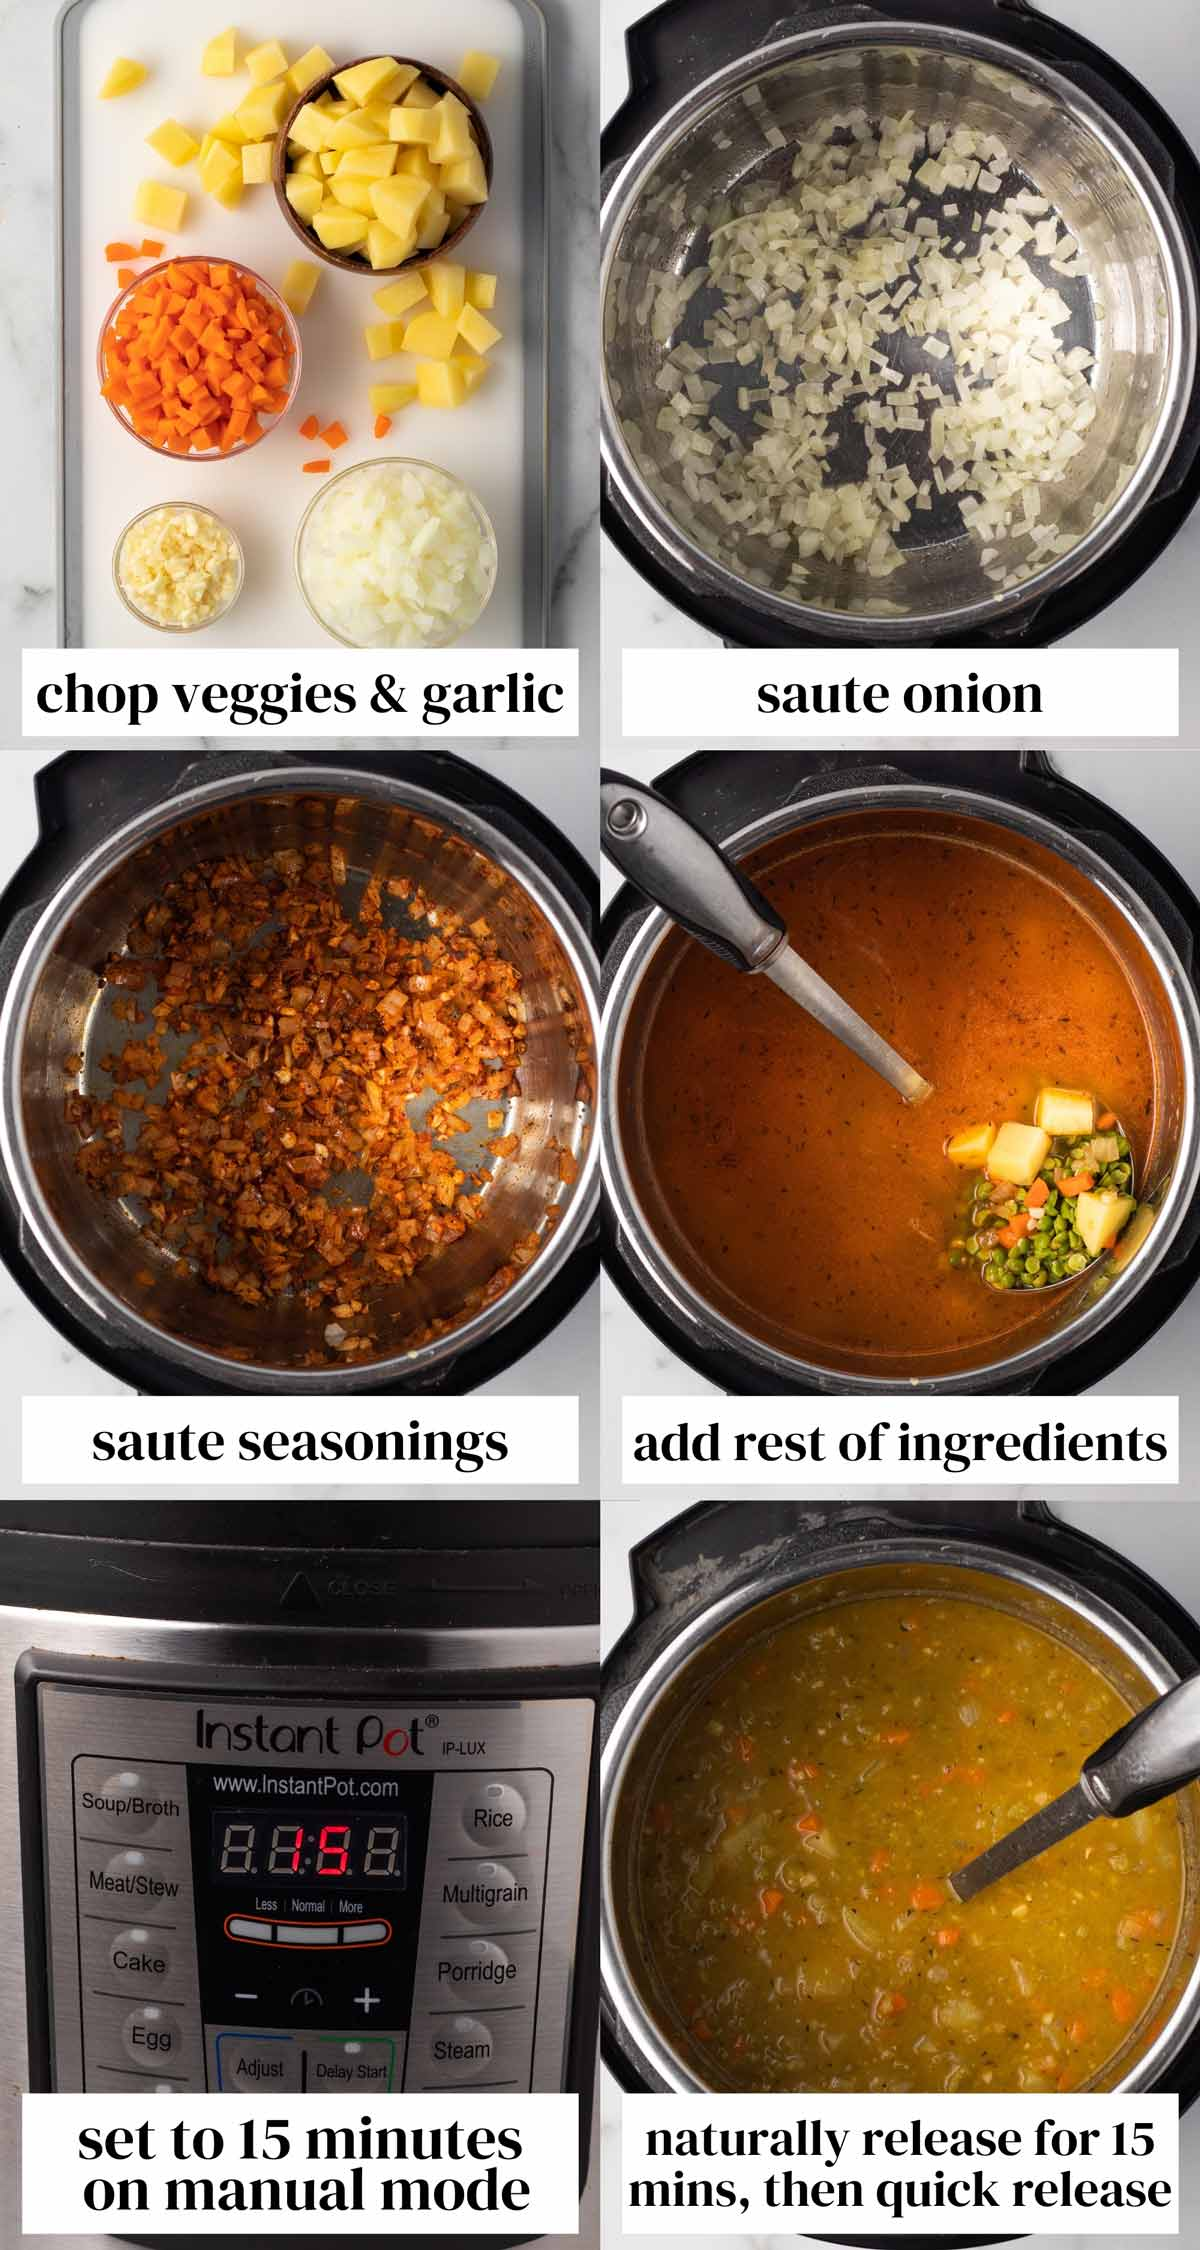 Step by step collage of how to make the soup.